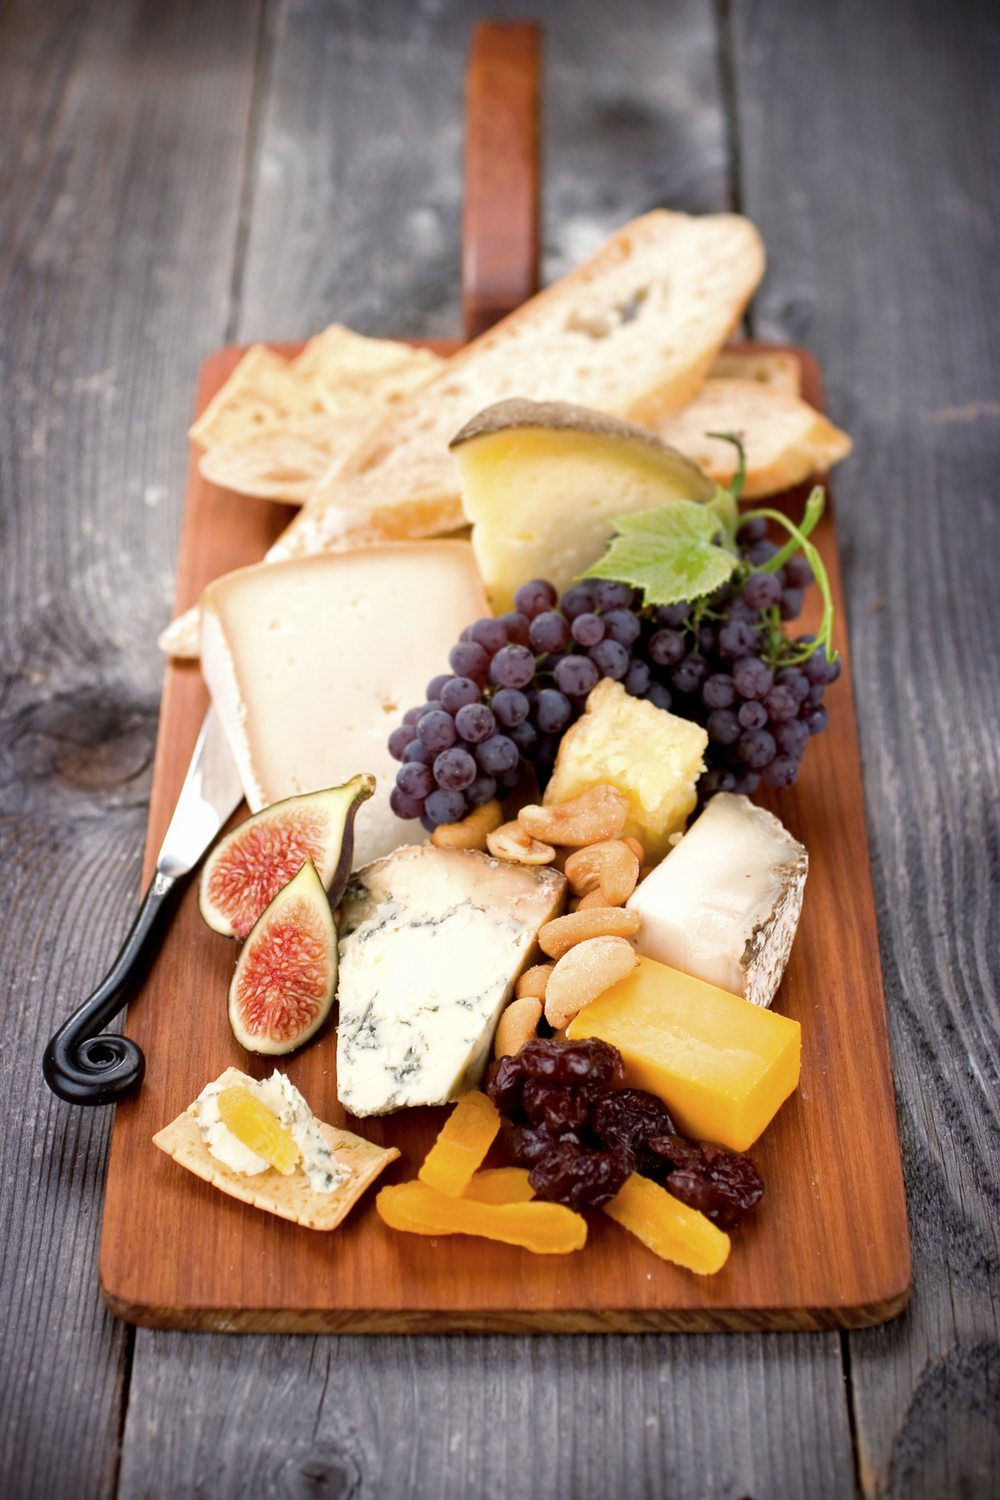 Cheeseboard & Cheese Platter Basics: Tips for the Perfect Spread